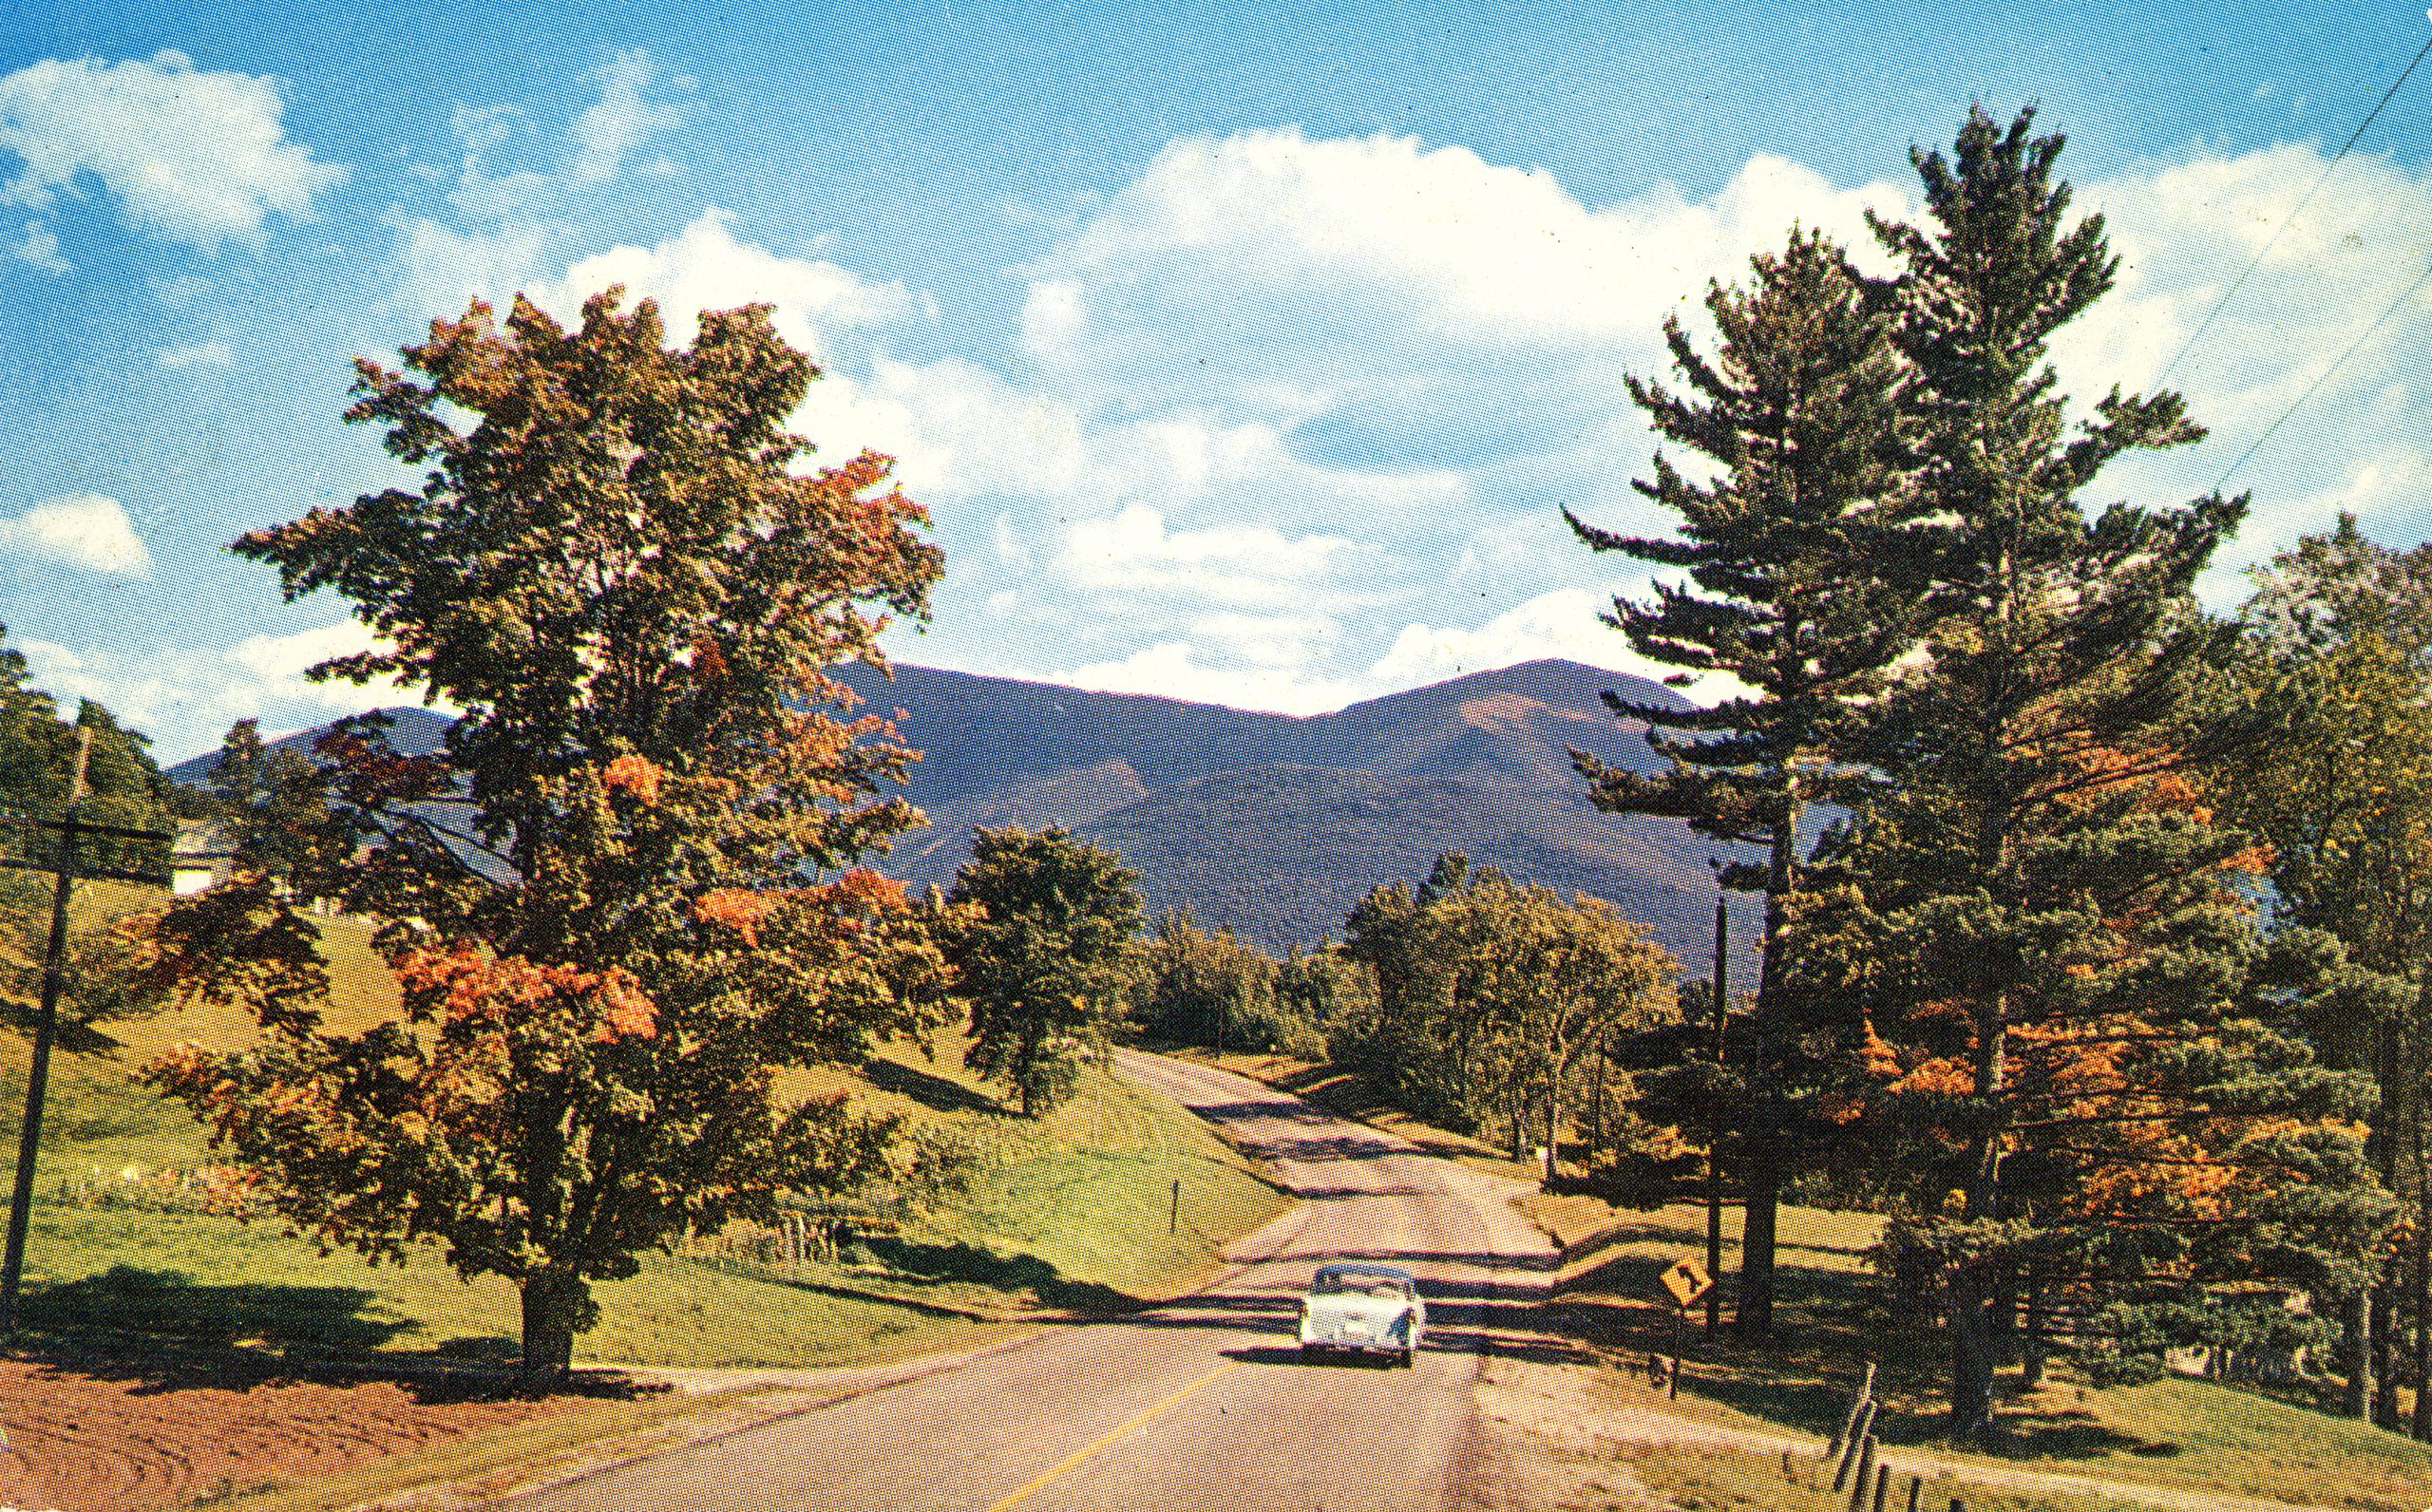 Vintage film photo of an autumnal tree lined road with a car driving down it